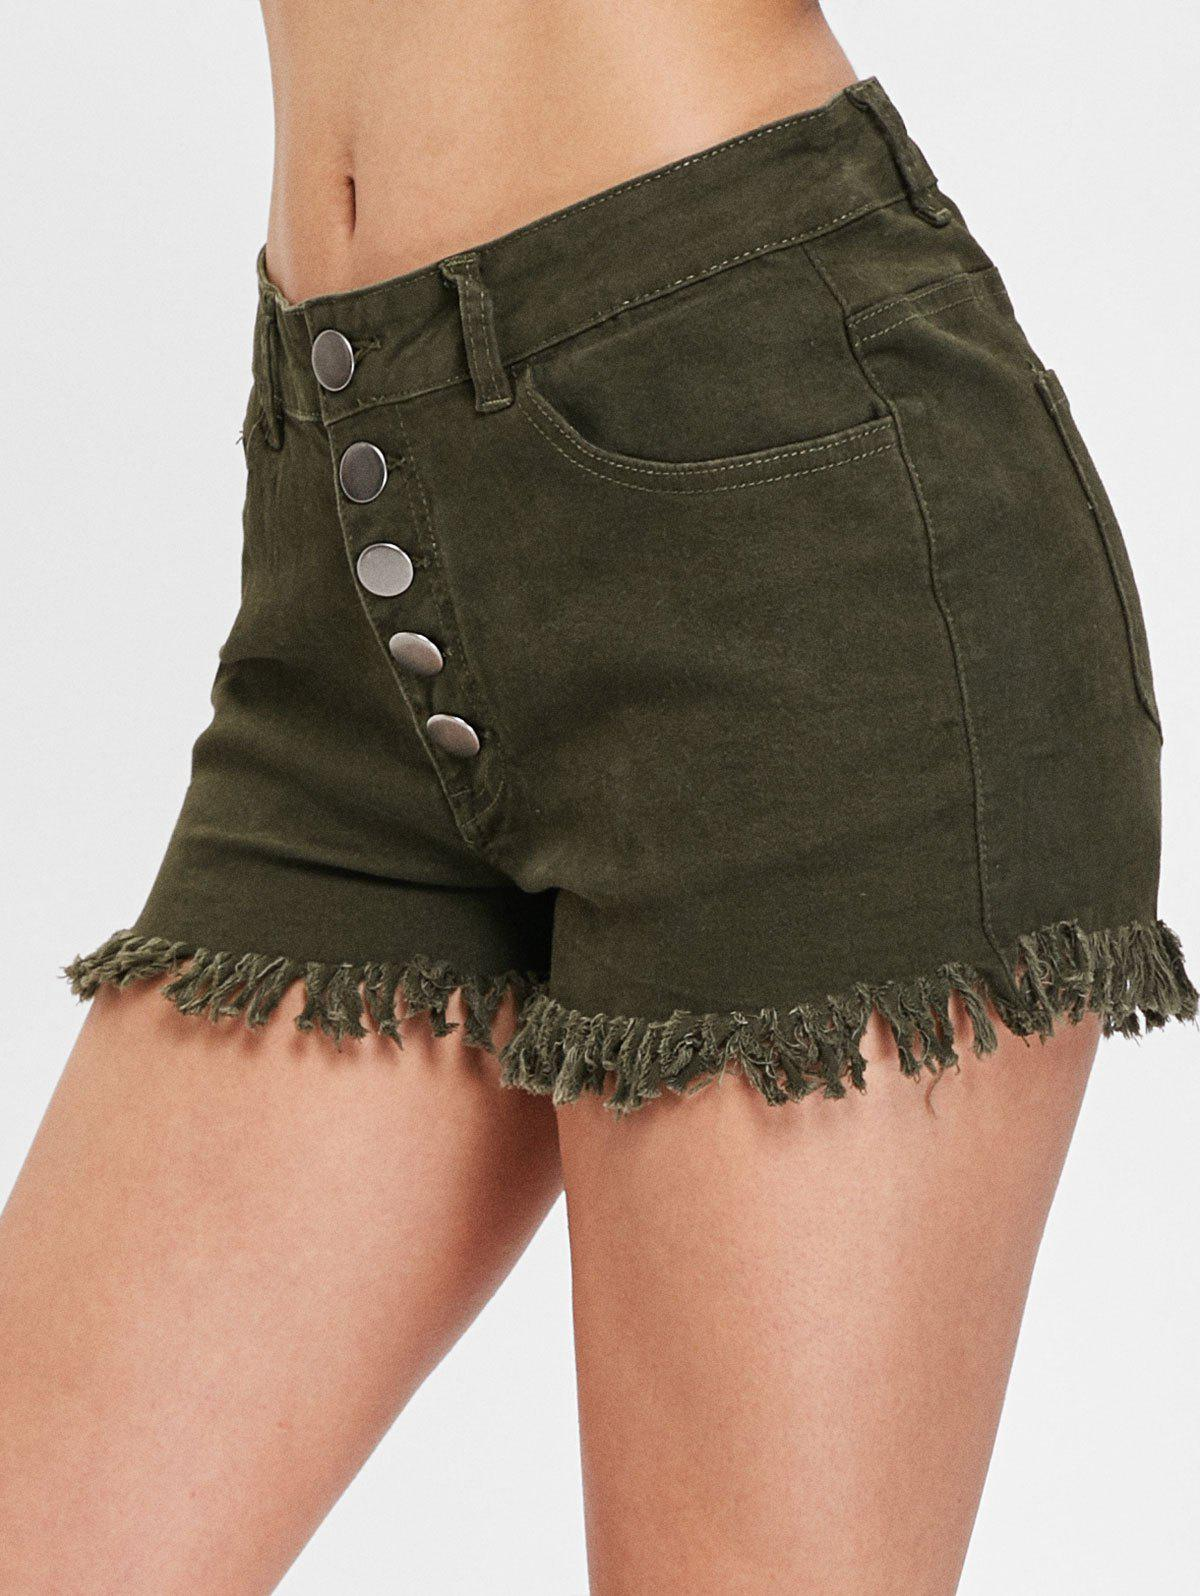 Store Button Fly Frayed Trim Jeans Shorts